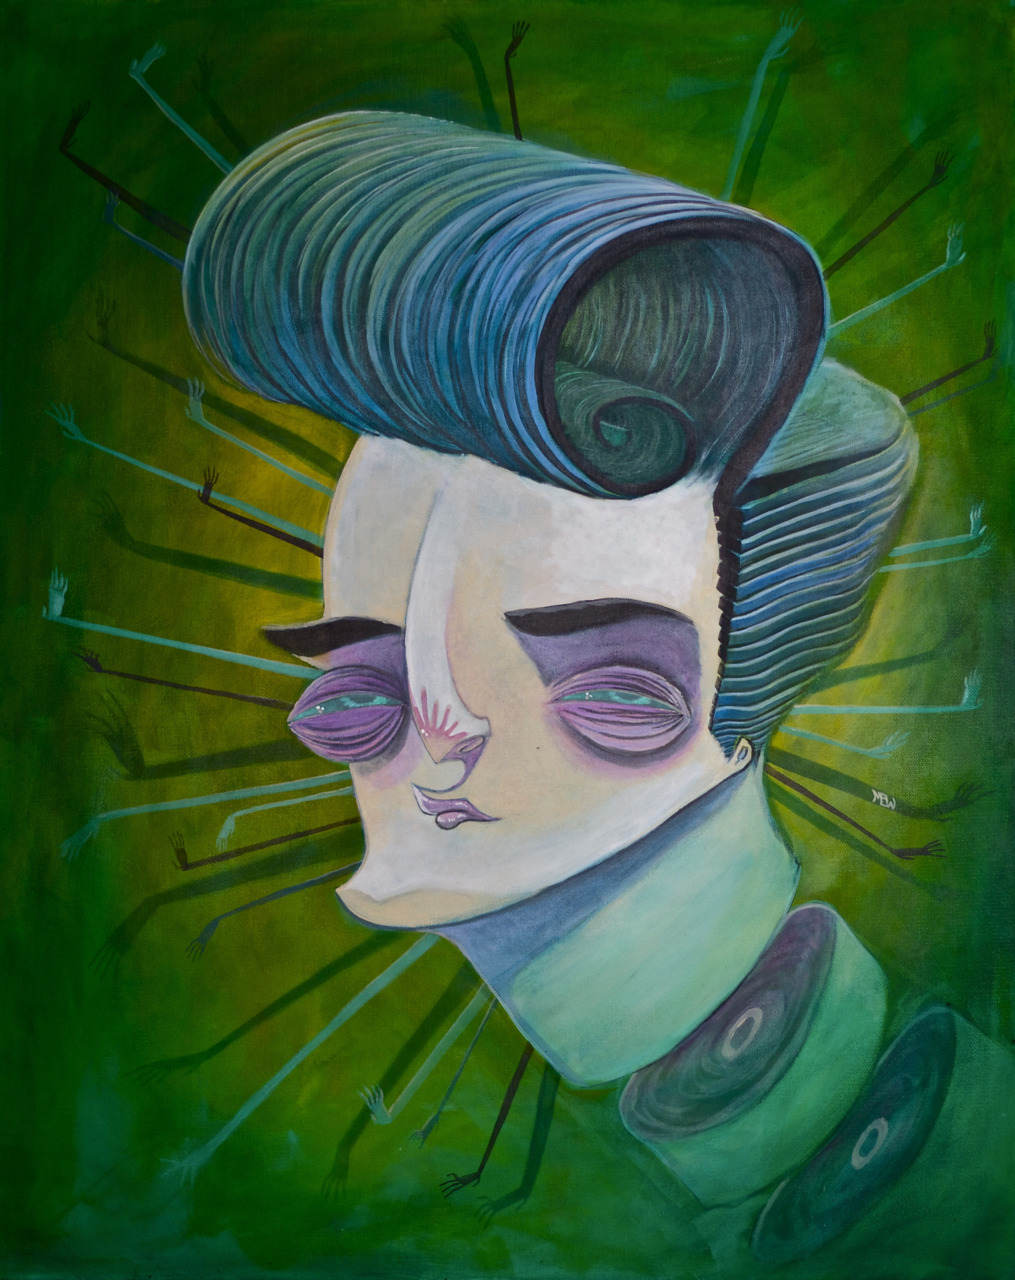 Acrylic on canvas, 2011 SOLD